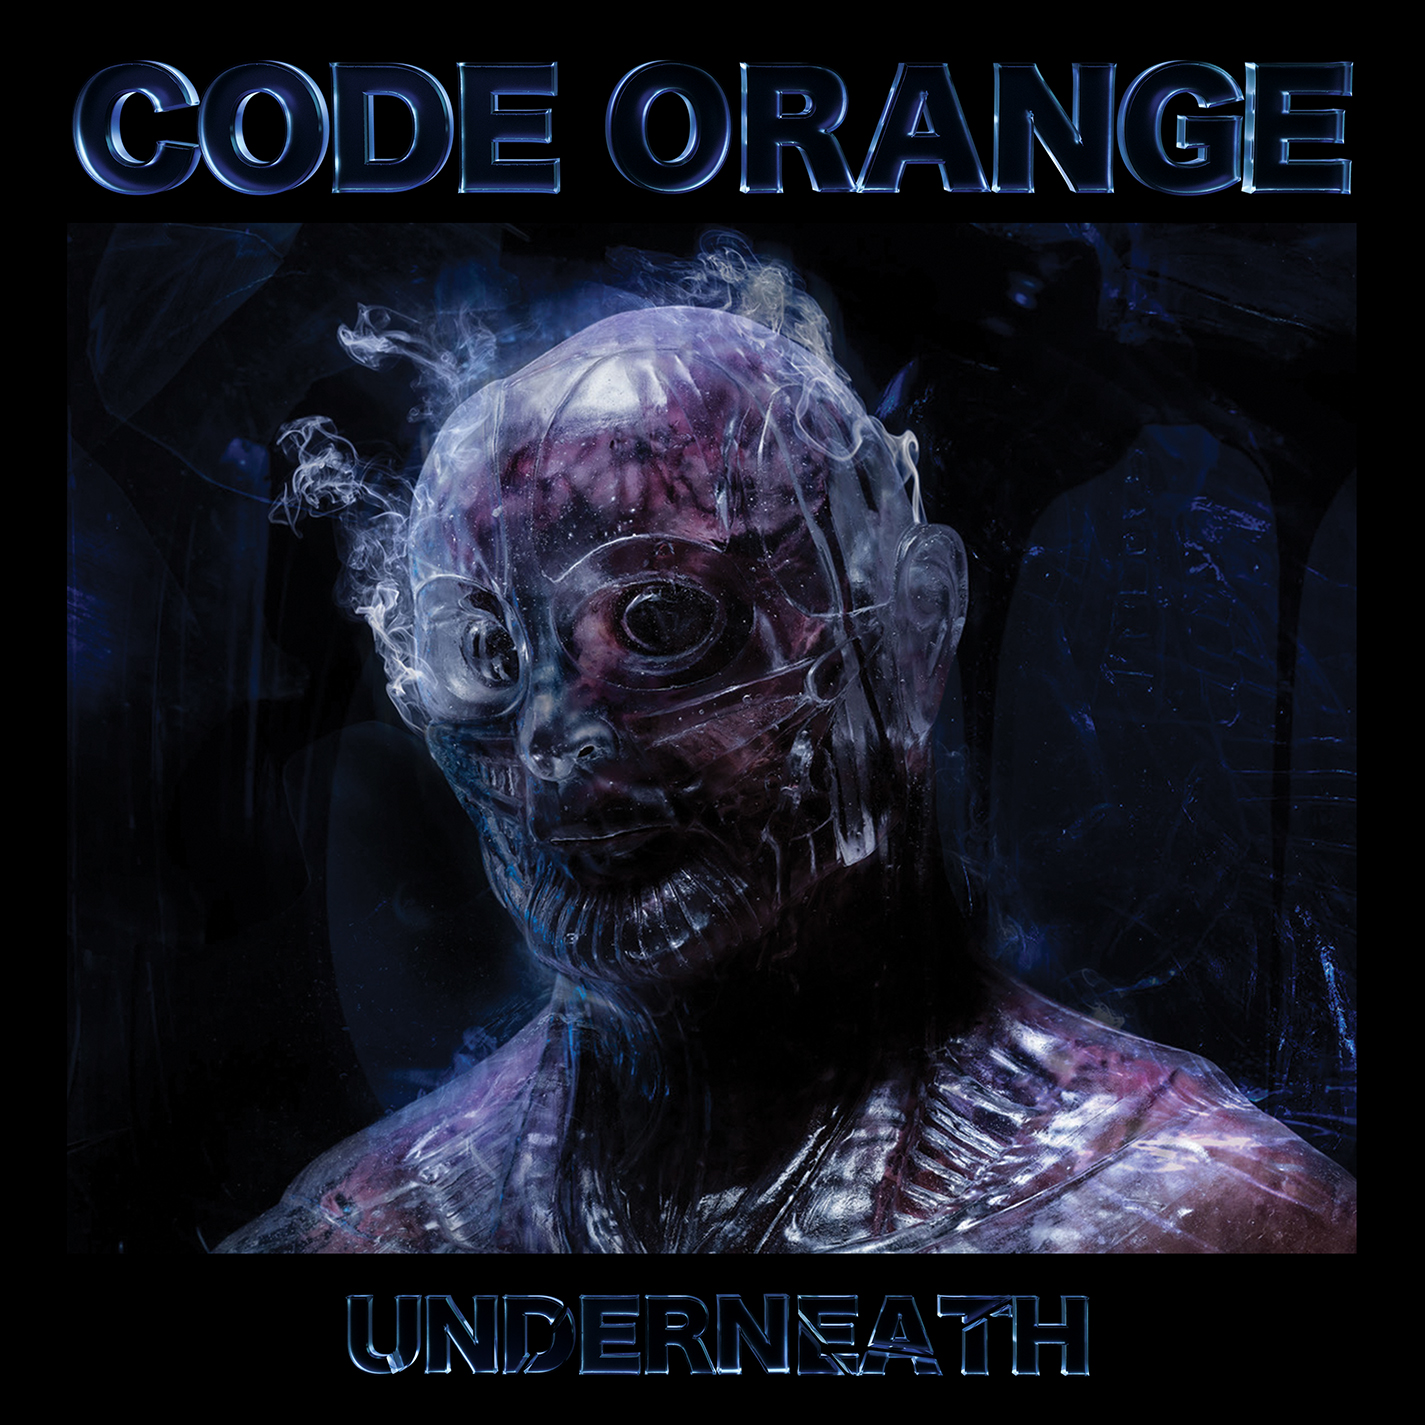 Code Orange - Underneath album art